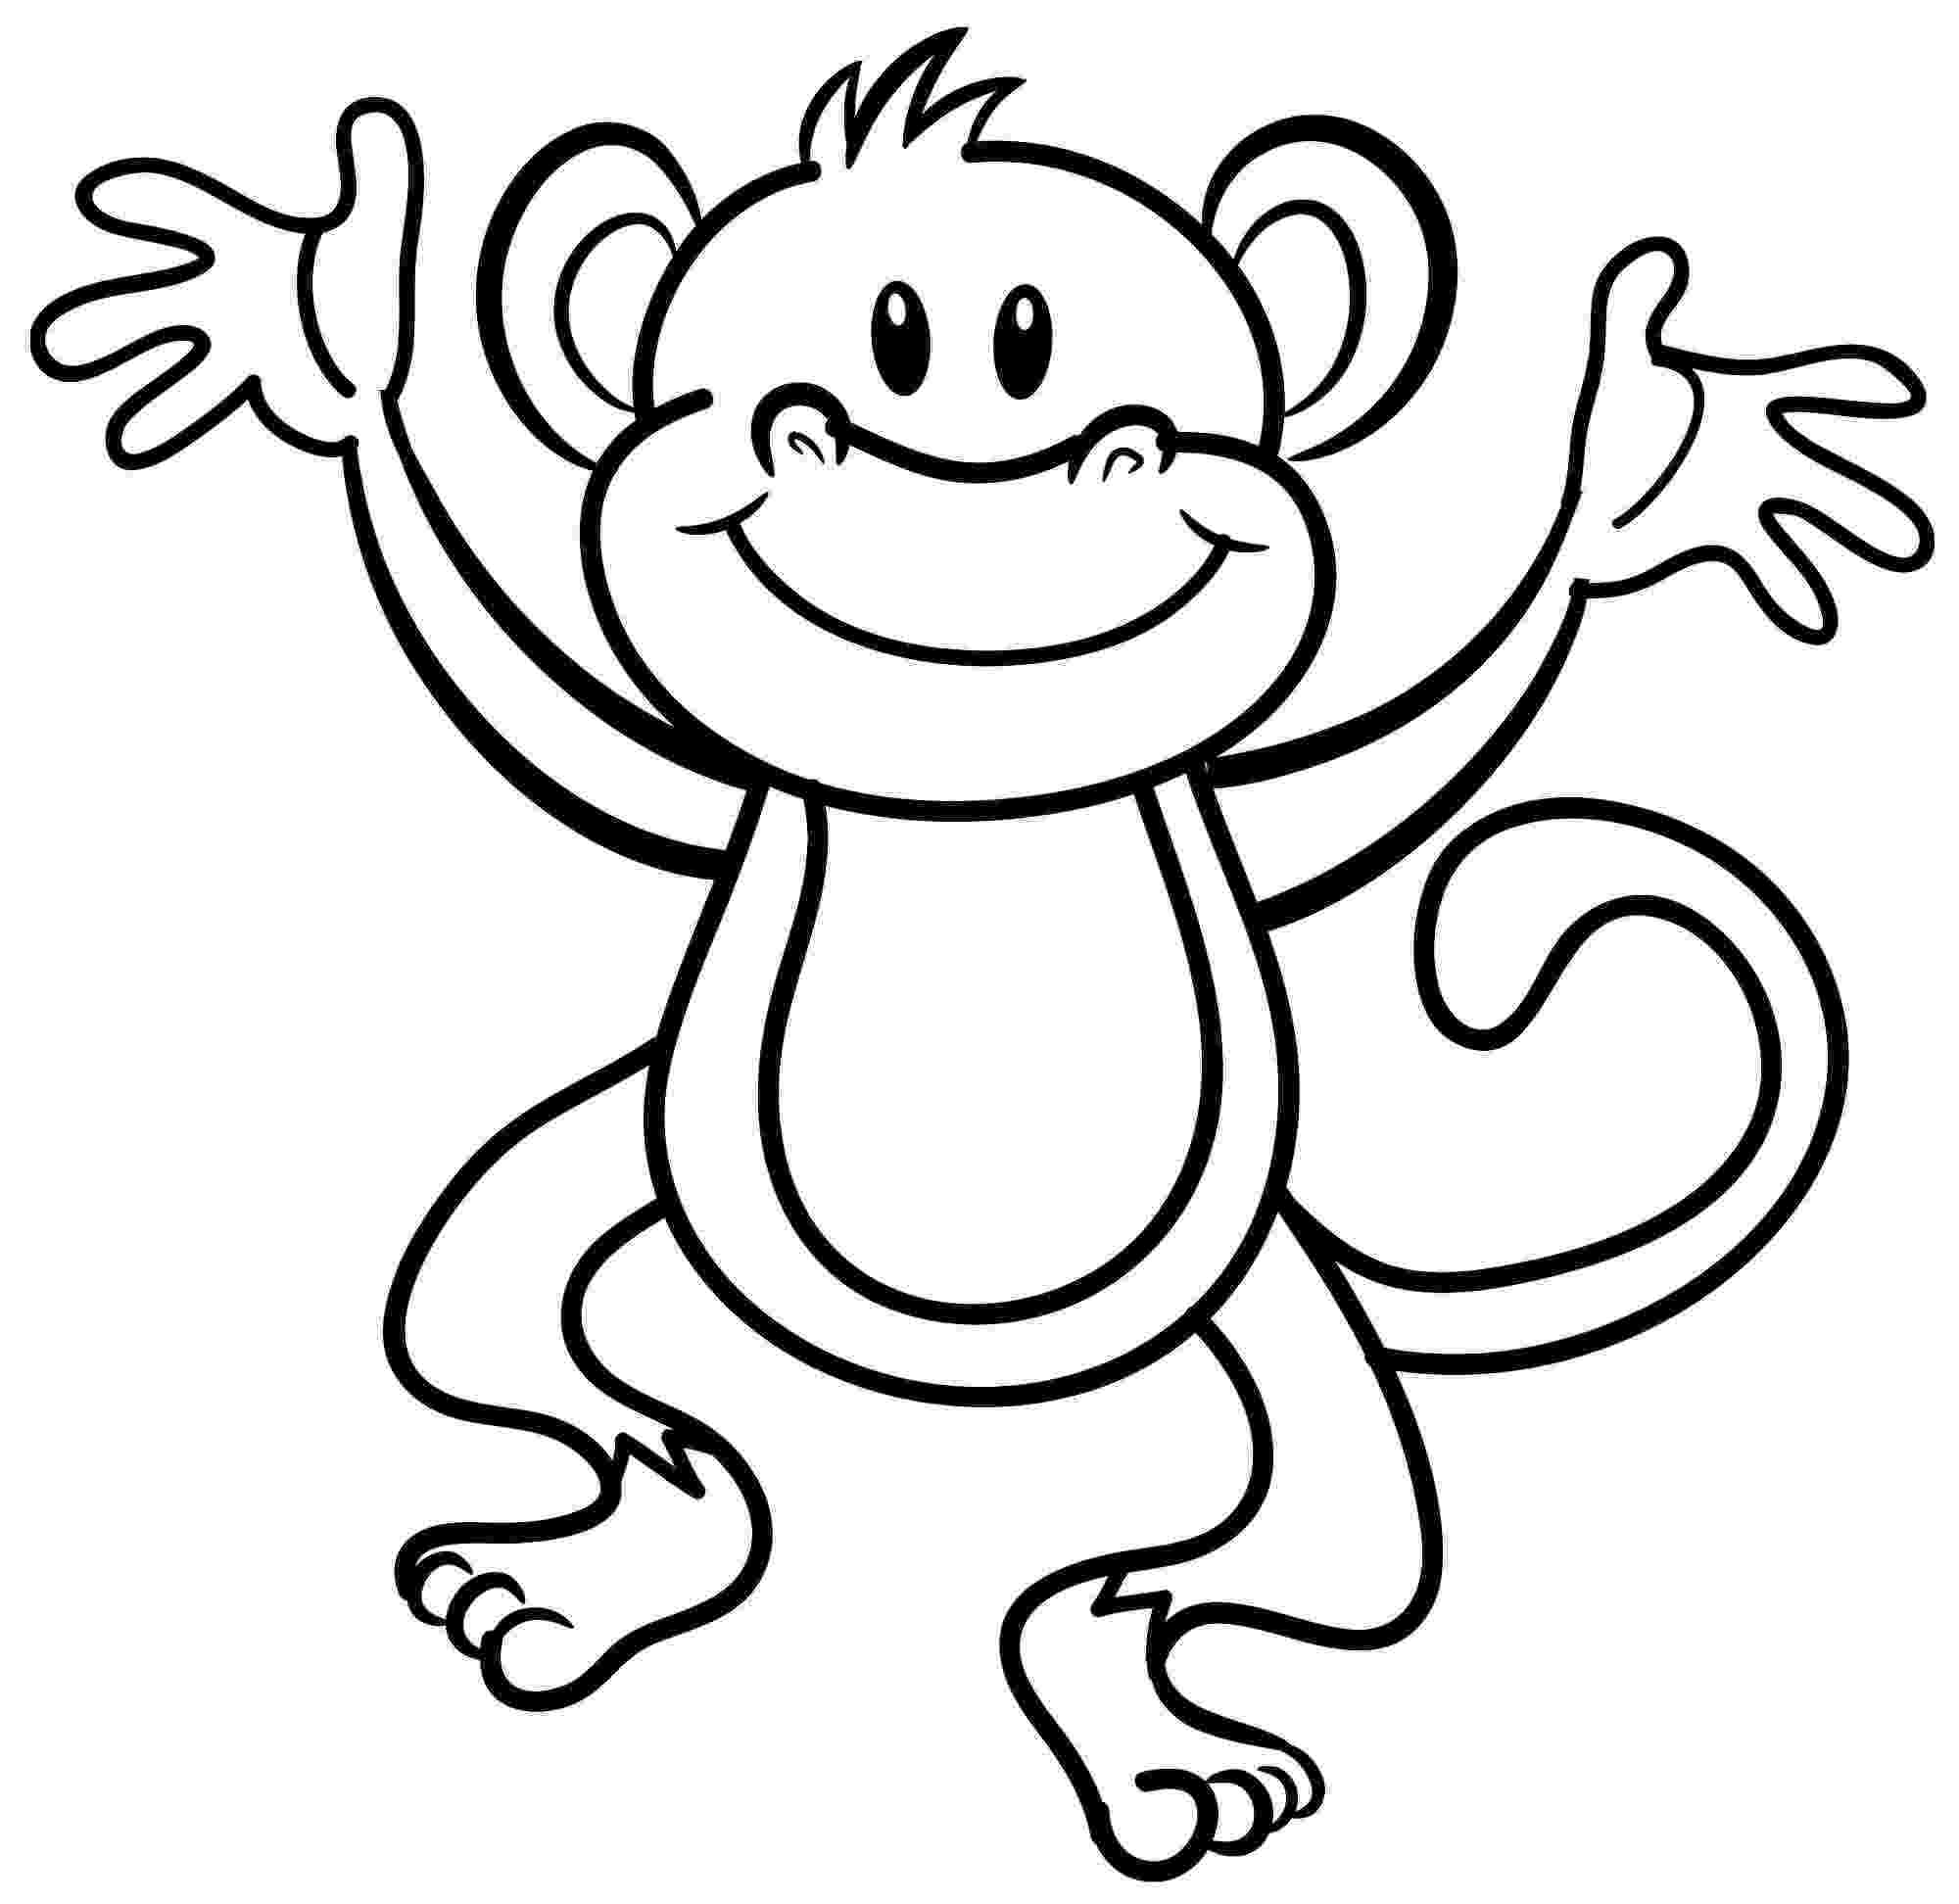 monkey color pages smiling monkey coloring page h m coloring pages pages monkey color